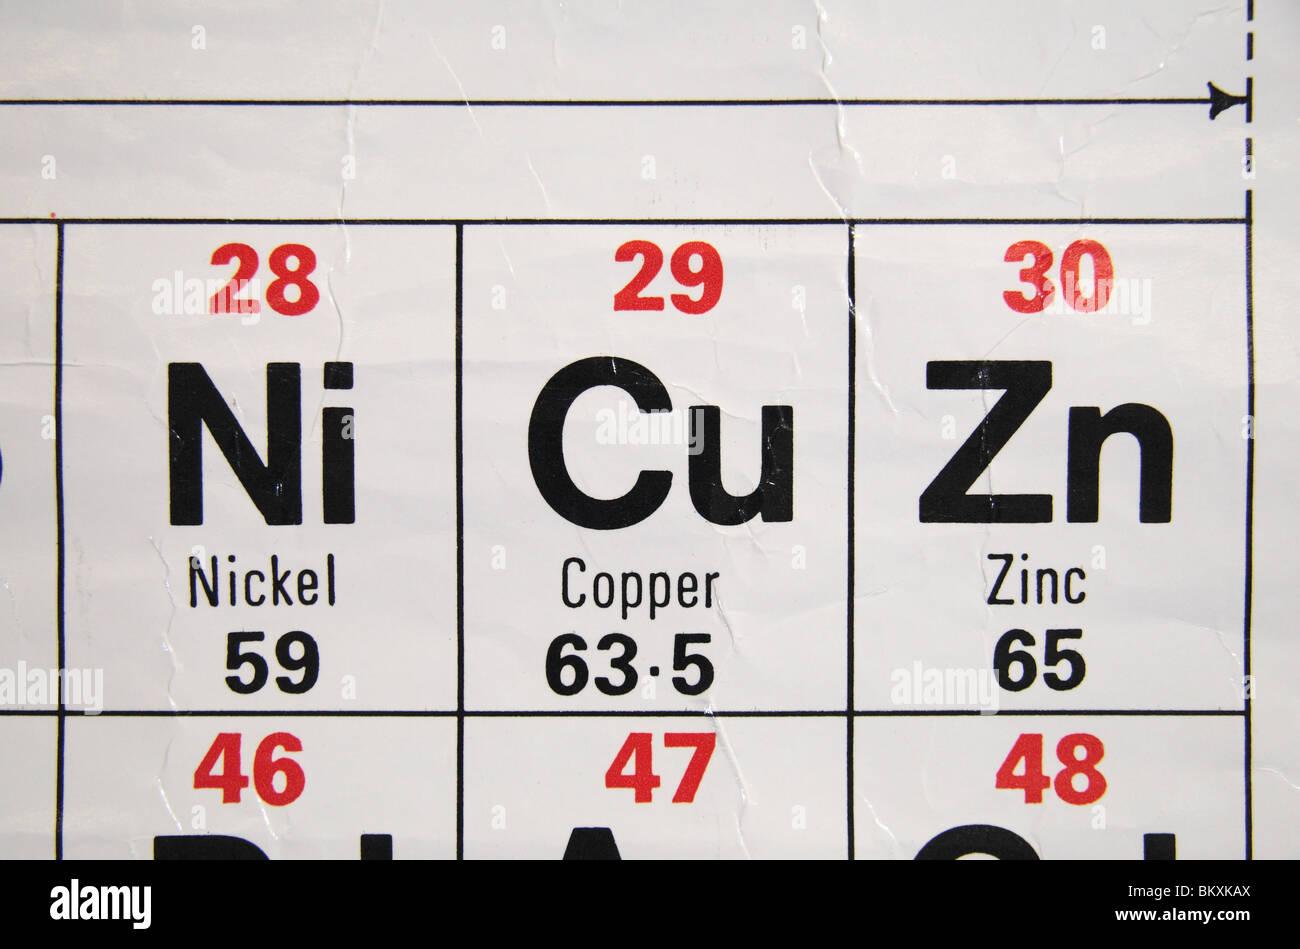 Close up view of a standard uk high school periodic table close up view of a standard uk high school periodic table focusing on nickel copper and zinc gamestrikefo Gallery